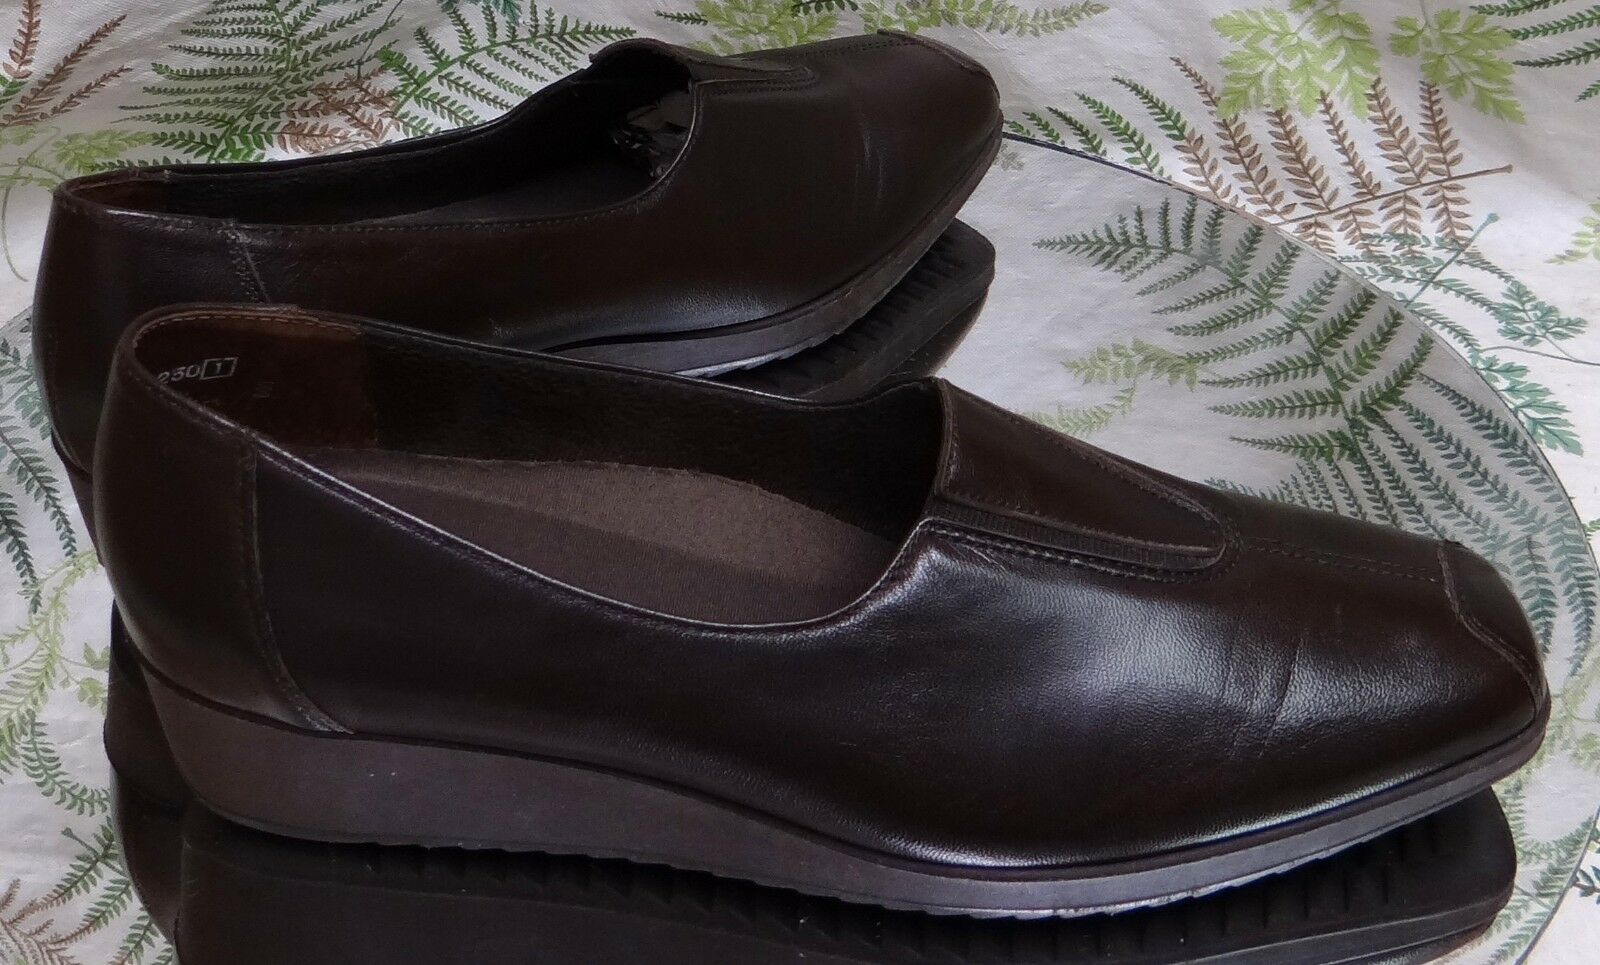 MUNRO BROWN LEATHER LOAFERS SLIP ONS BUSINESS DRESS 7.5 HEELS Schuhe Damenschuhe SZ 7.5 DRESS M 5af7d1